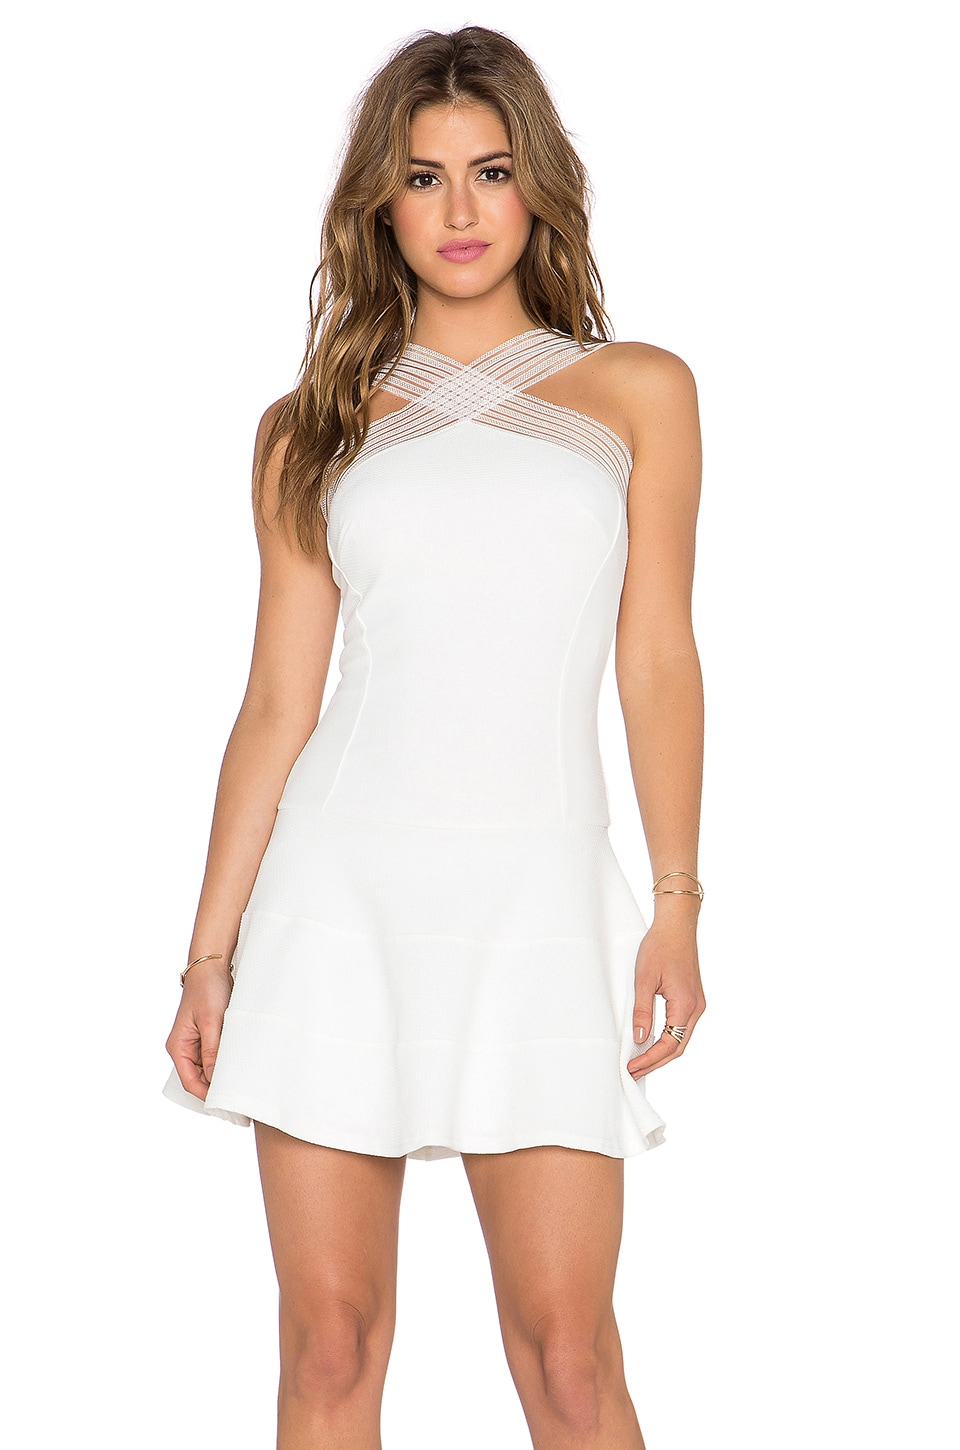 TFNC London Freda Dress in White